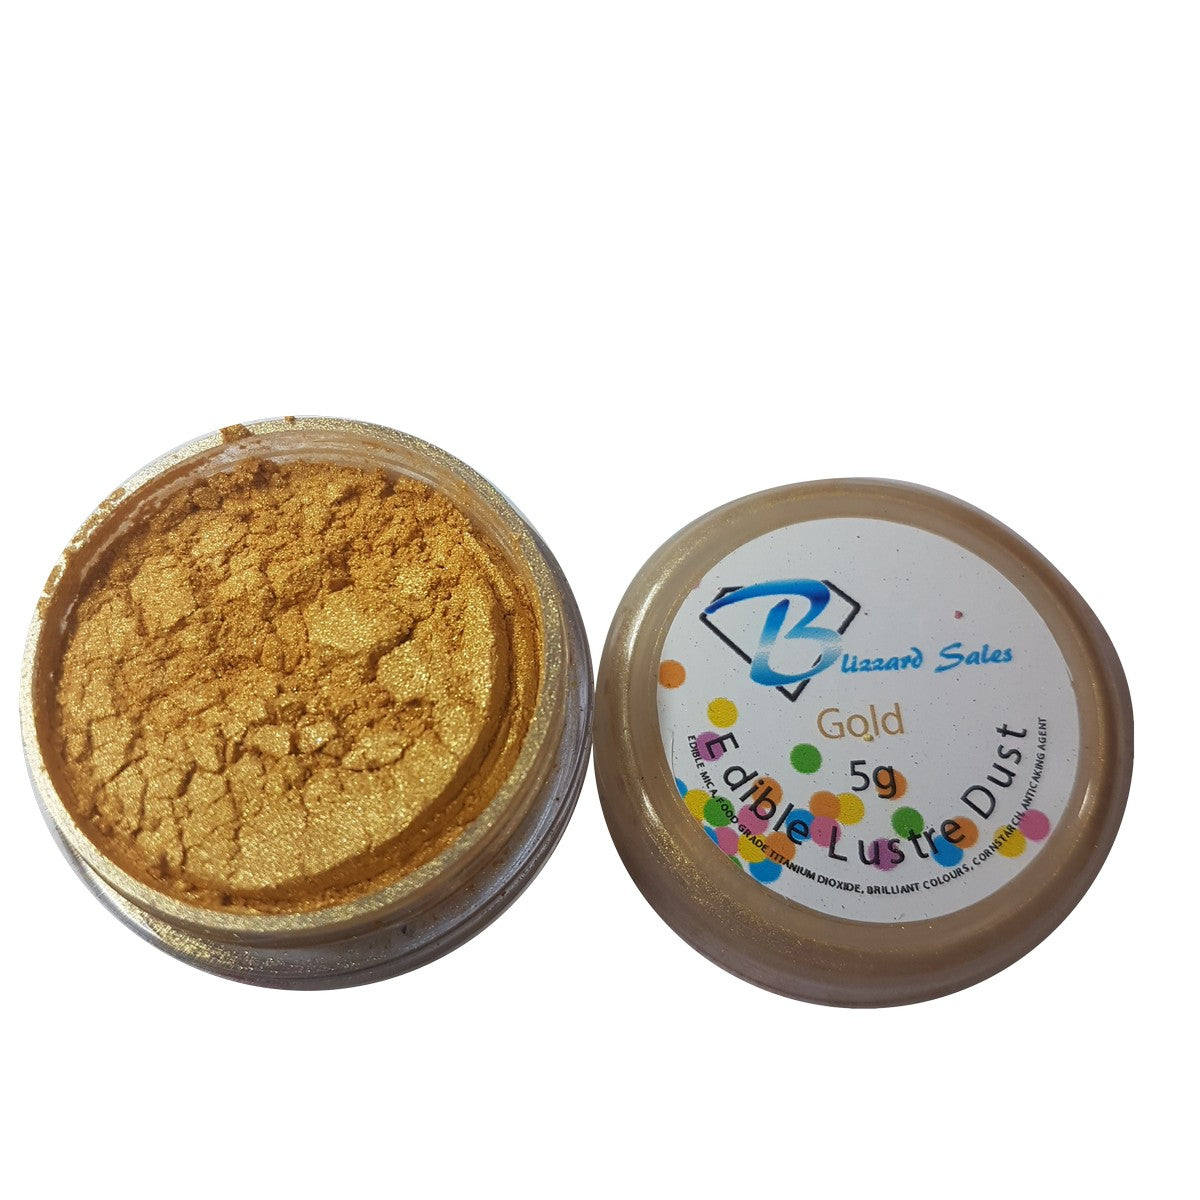 Edible Lustre Dusts and Edible Glitter - Premium Quality Edible Shimmer Powders 5gram